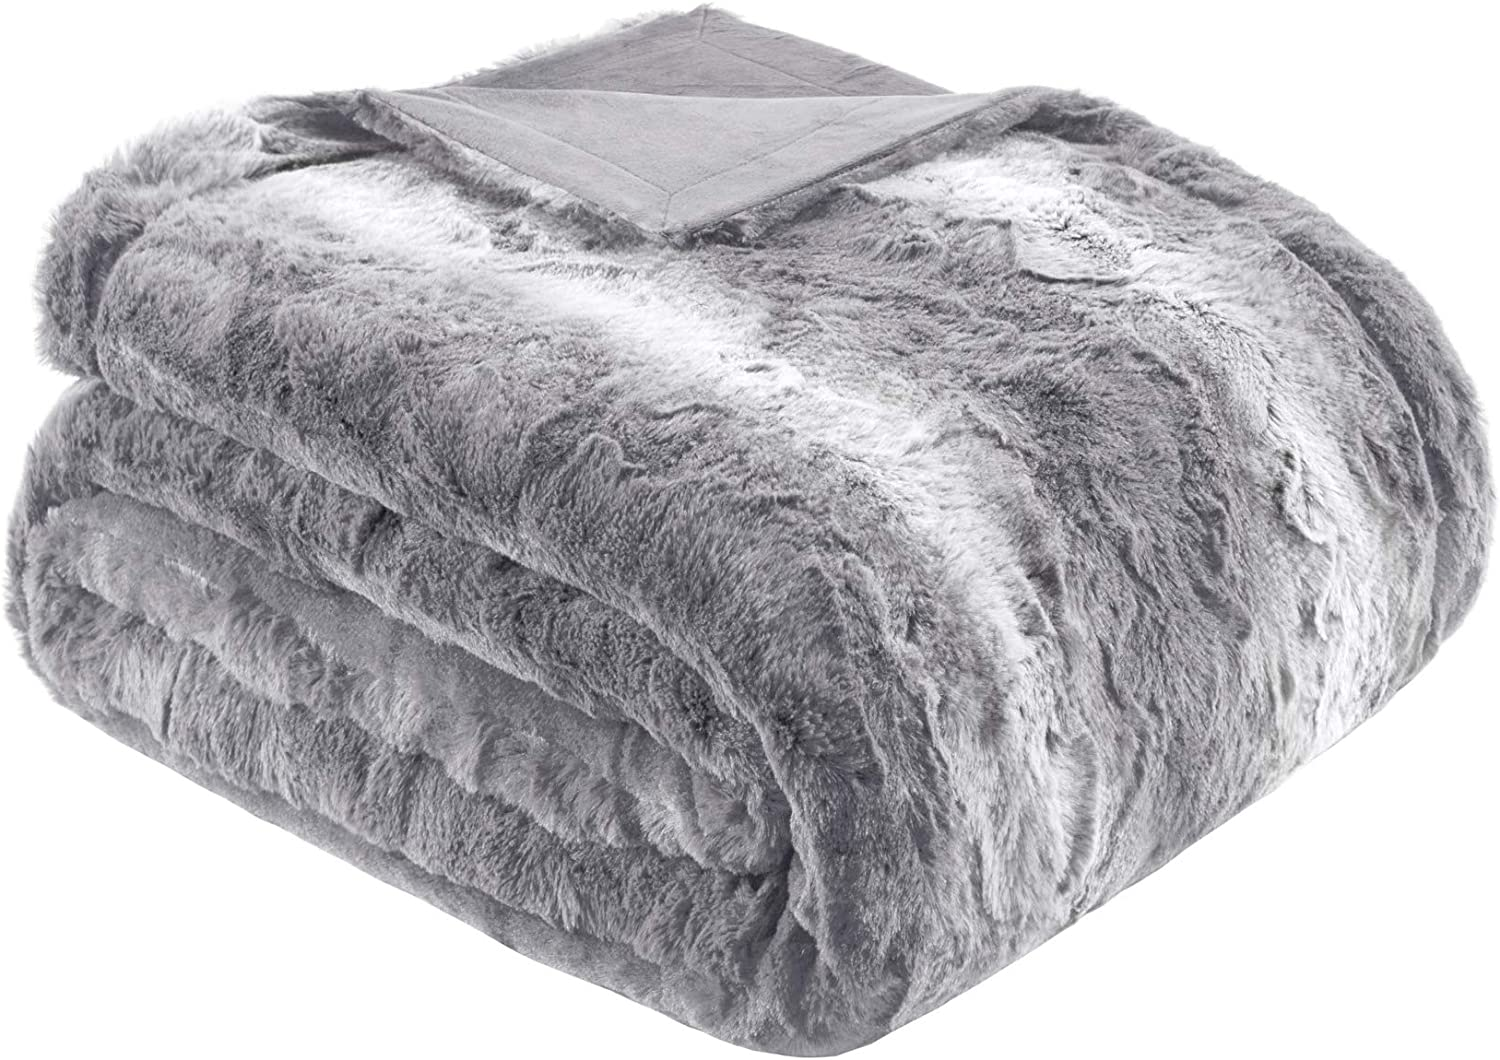 Madison Park Zuri Soft Plush Luxury Oversized Faux Fur Throw Animal Stripes Design, Mink On The Reverse Modern Cold Weather Blanket For Bed, Sofa Couch, 60x70, Grey